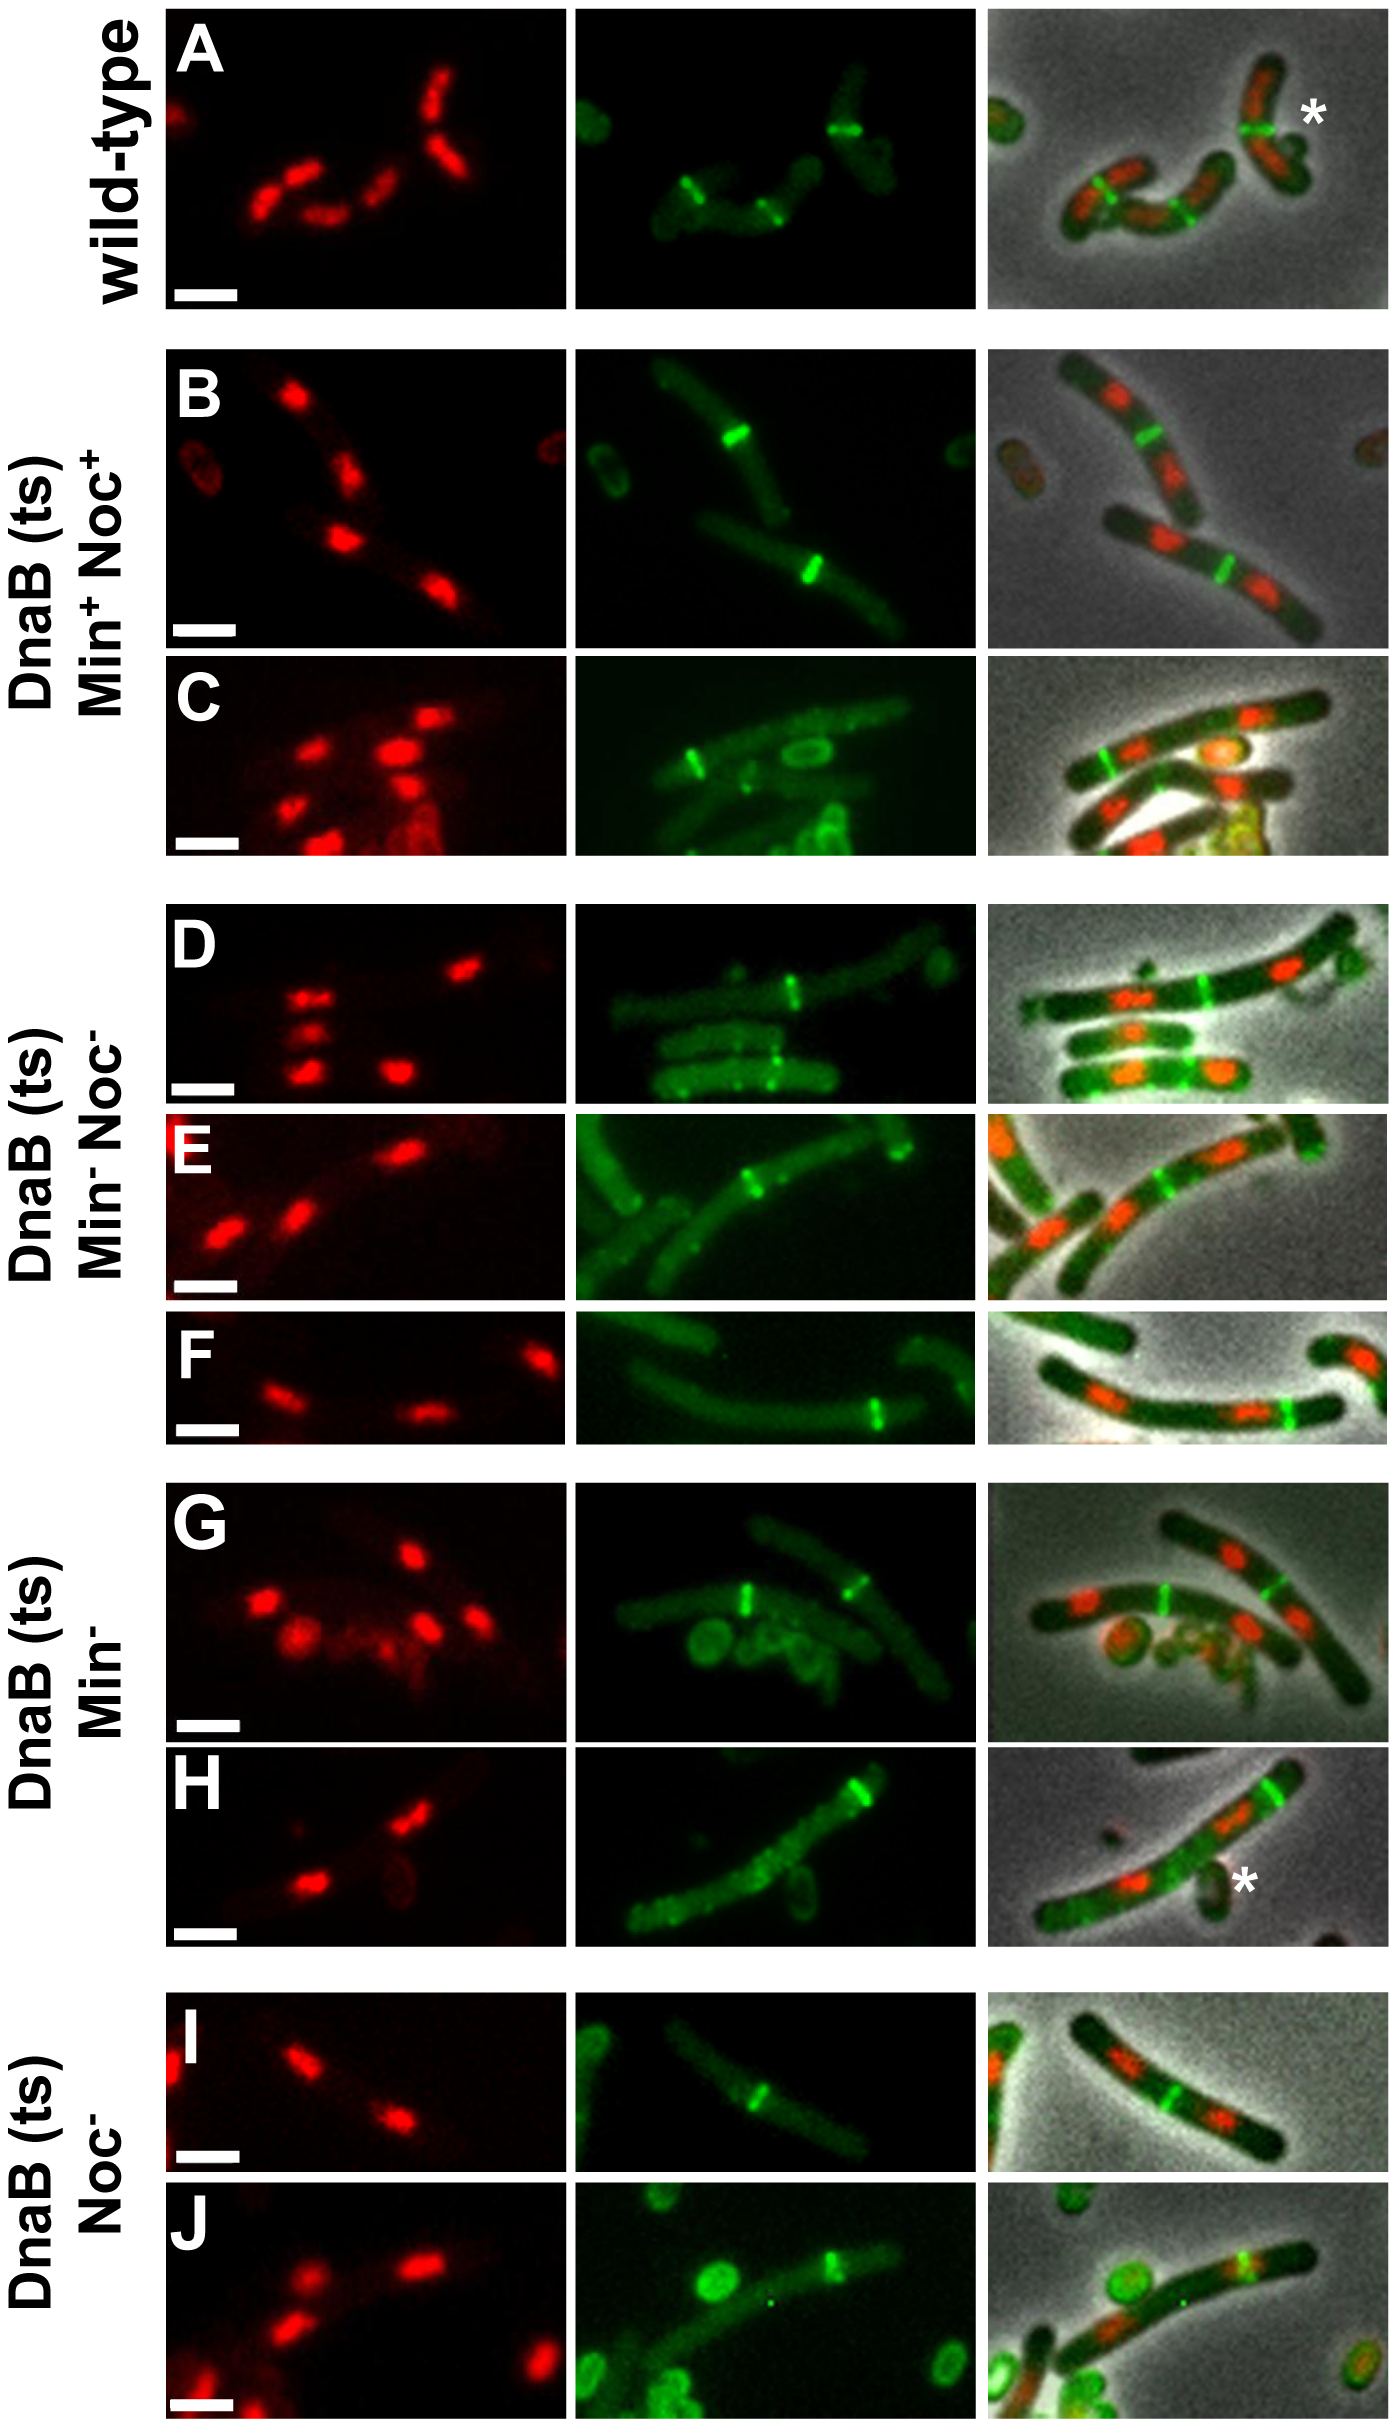 Z ring formation and positioning in cells with two separated nucleoids.